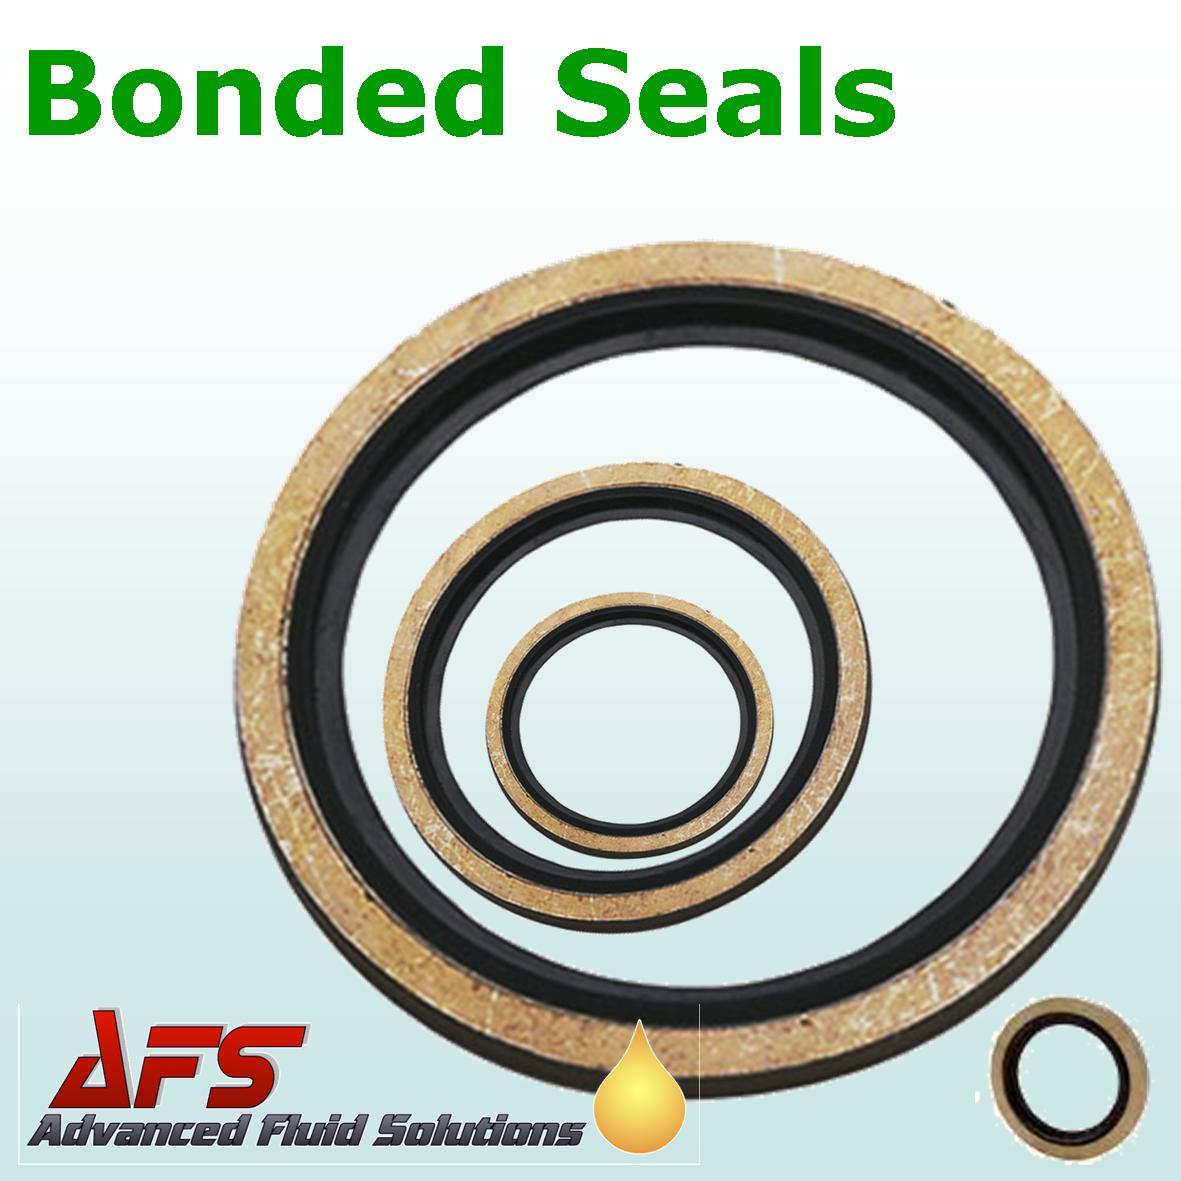 1 4 Bsp Self Centring Bonded Dowty Seal